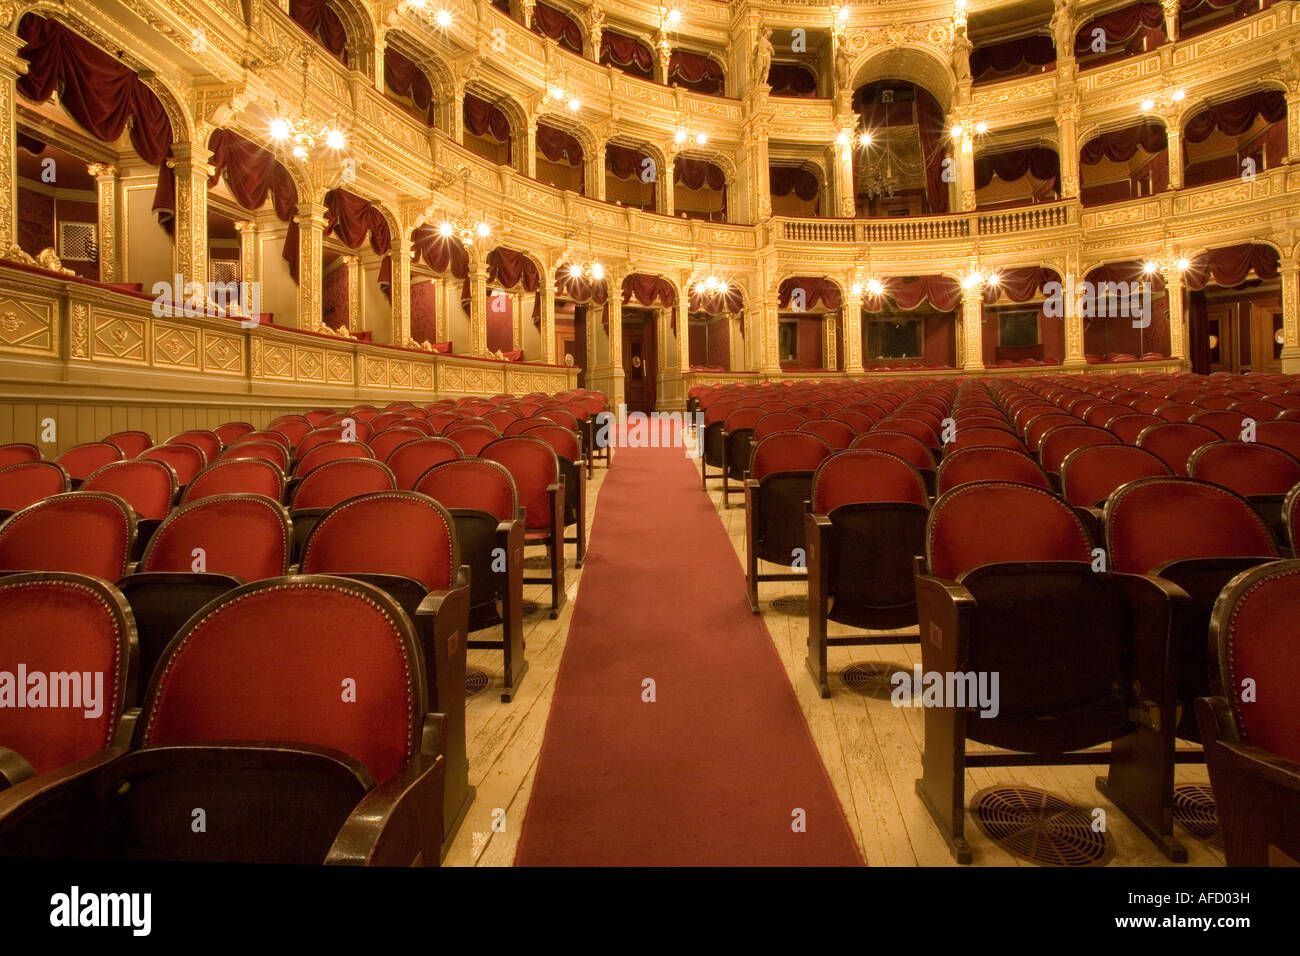 inside an old theater - Stock Image